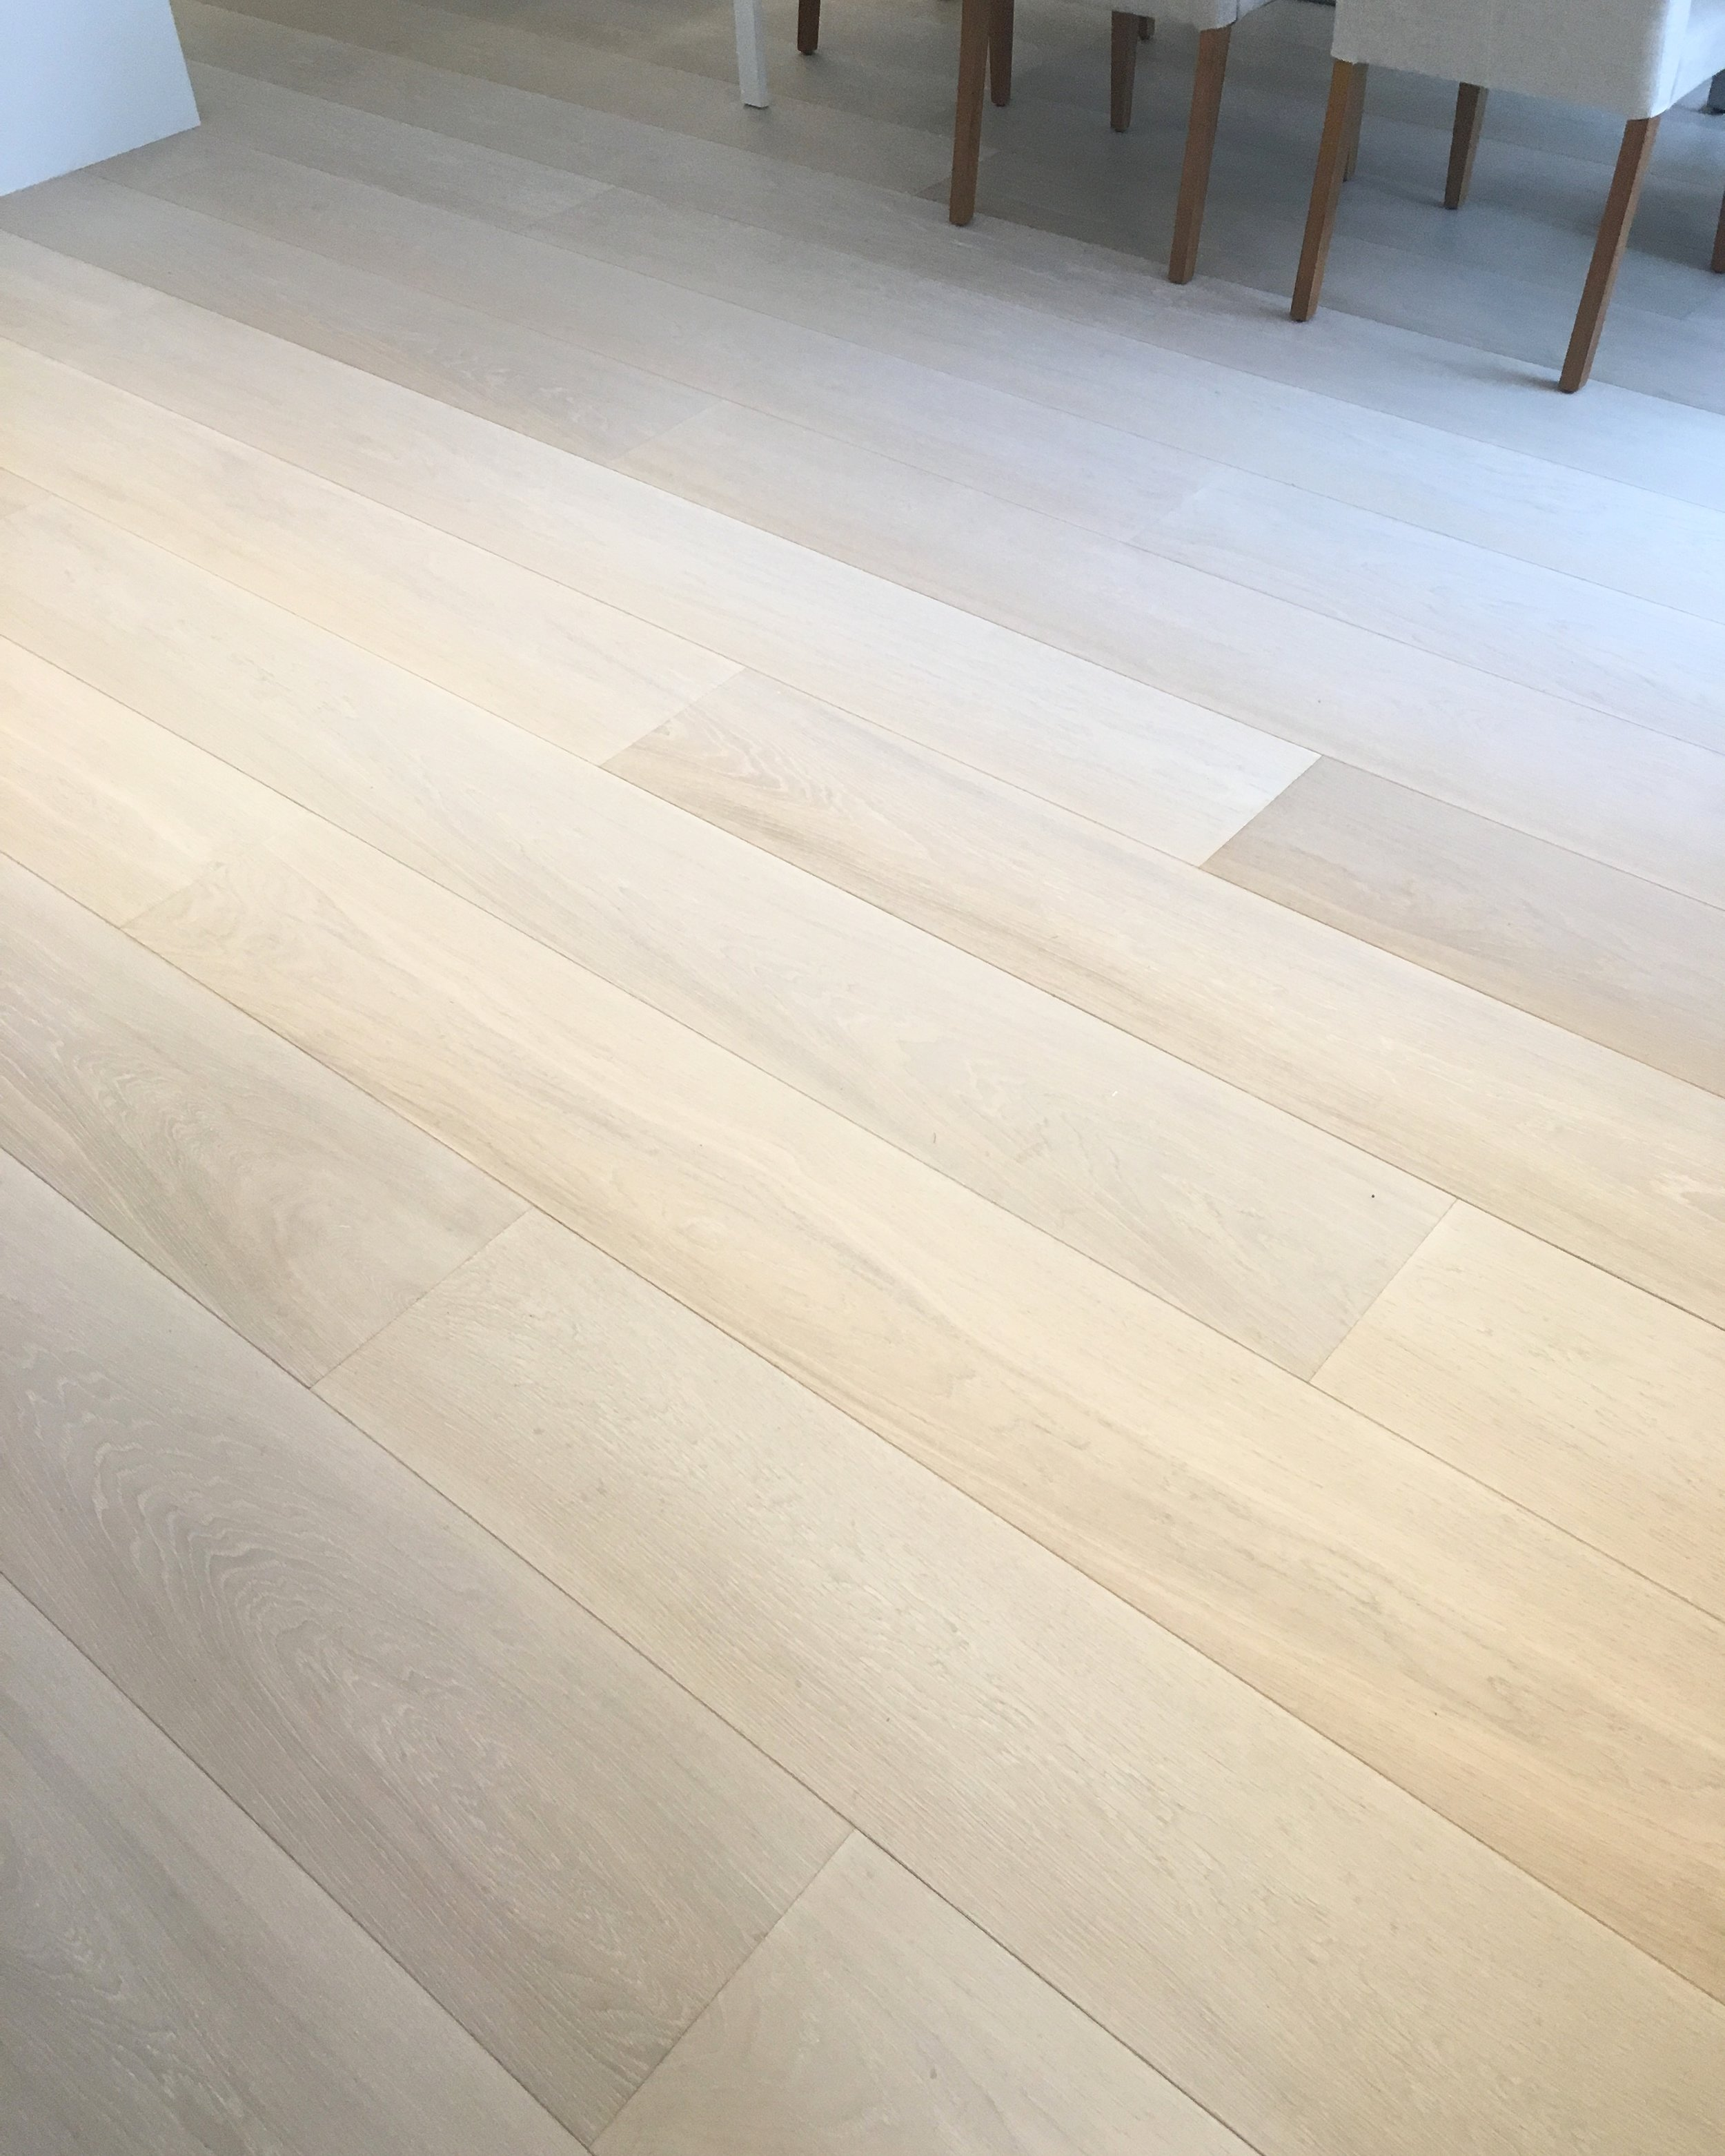 We offer a wide range of wood grades including Select: exceptional clarity, minimal colour change, sound pin knots up to 1cm, no cracks, no sapwood, no insect damage. And most importantly, responsibly harvested.